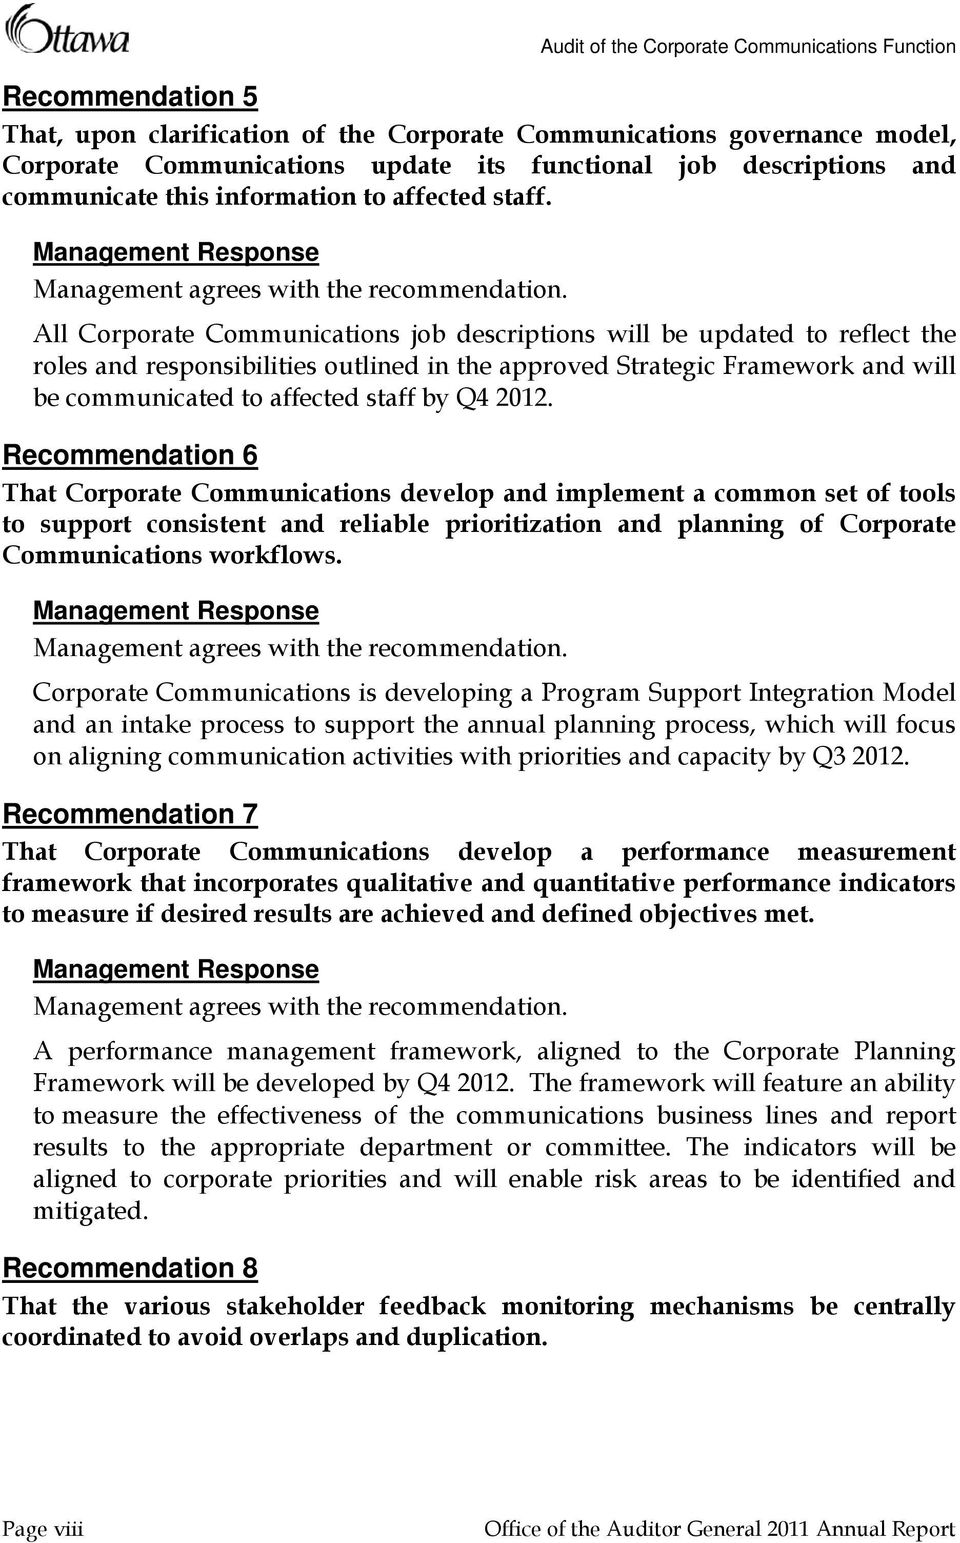 All Corporate Communications job descriptions will be updated to reflect the roles and responsibilities outlined in the approved Strategic Framework and will be communicated to affected staff by Q4